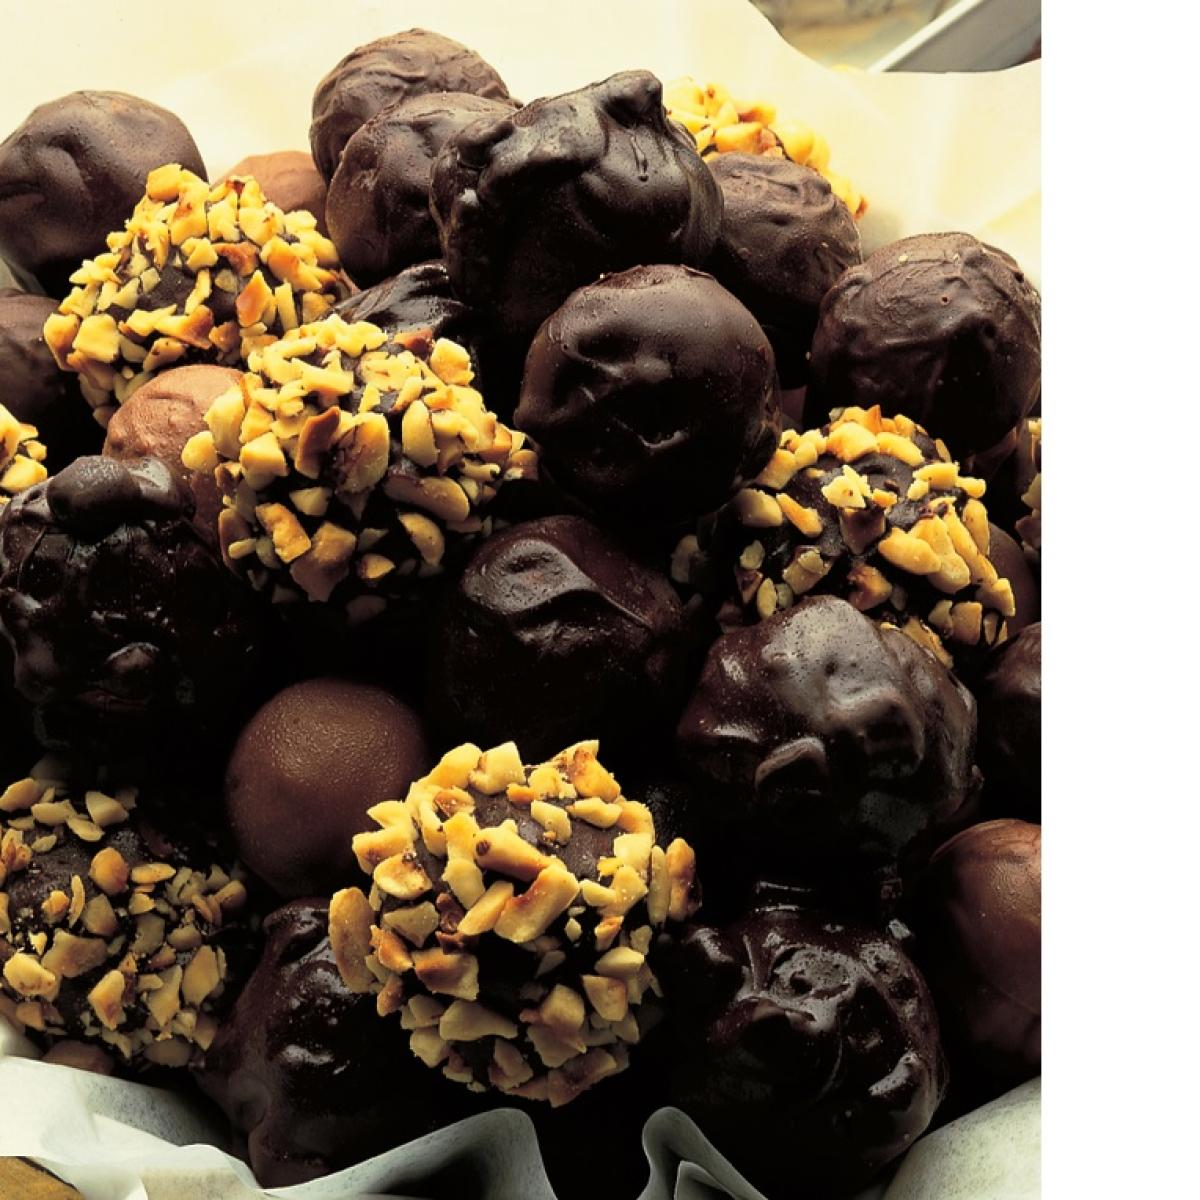 Chocolate homemade chocolate truffles